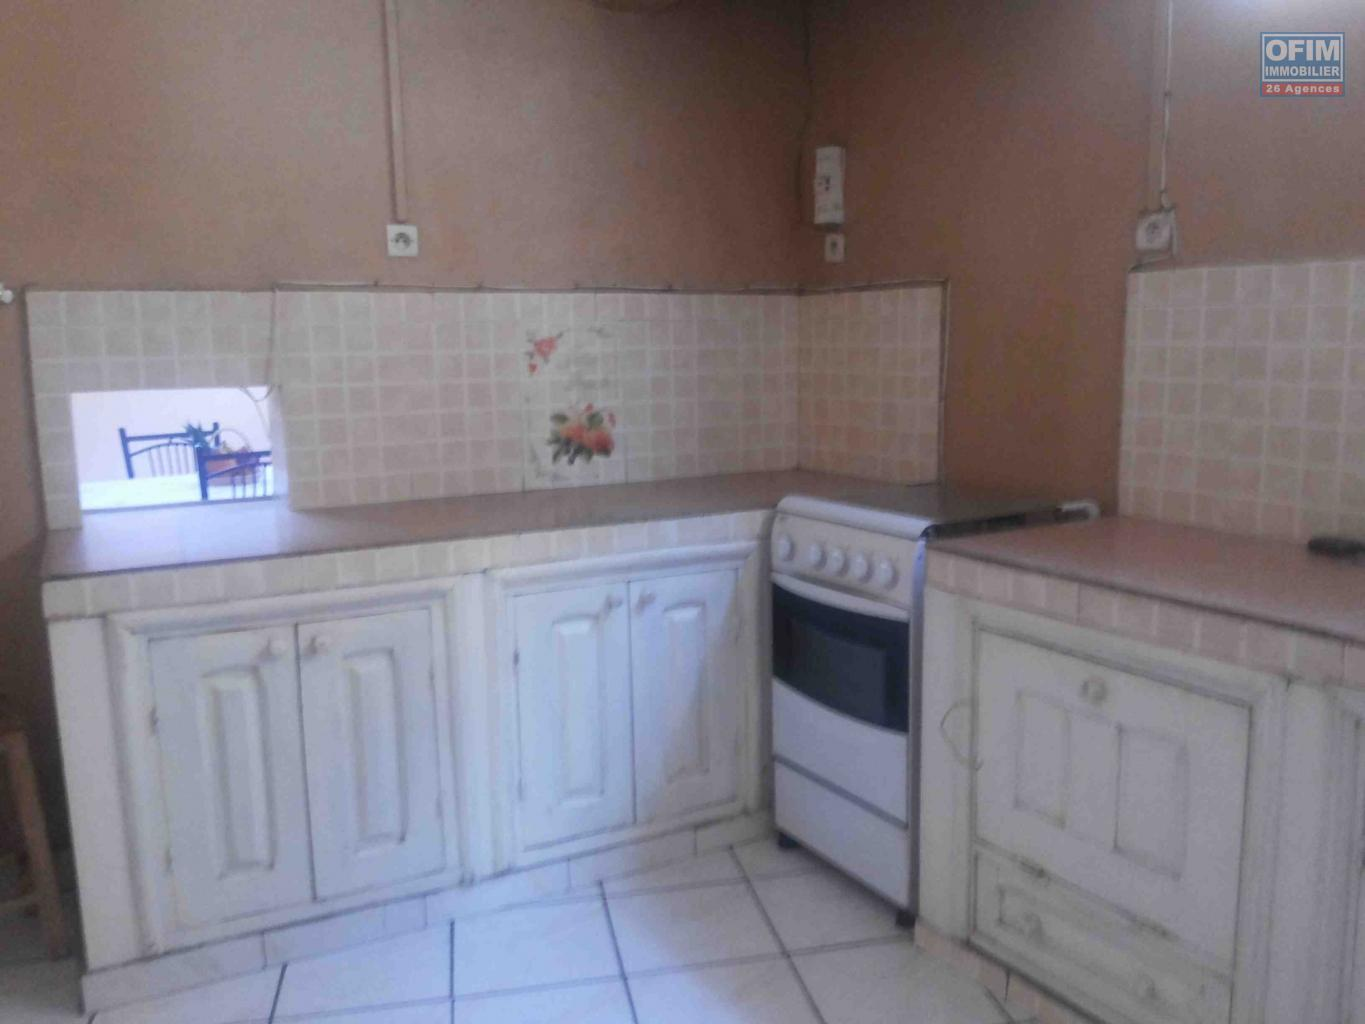 Location appartement antananarivo tananarive a for Appartement a louer meuble